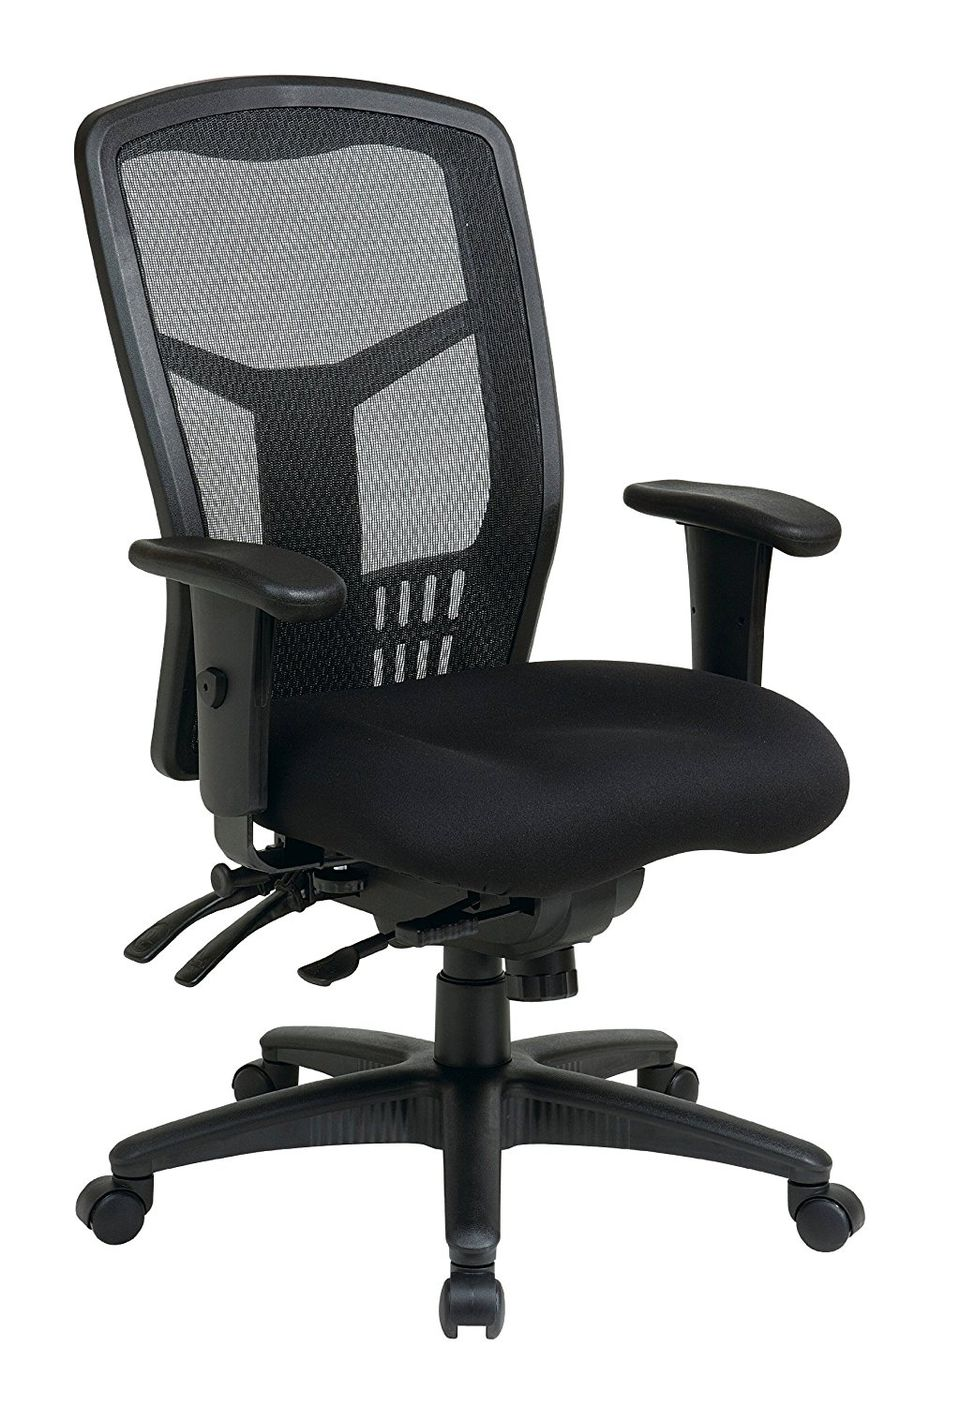 The 7 best ergonomic office chairs to buy in 2018 for Best office desk chairs